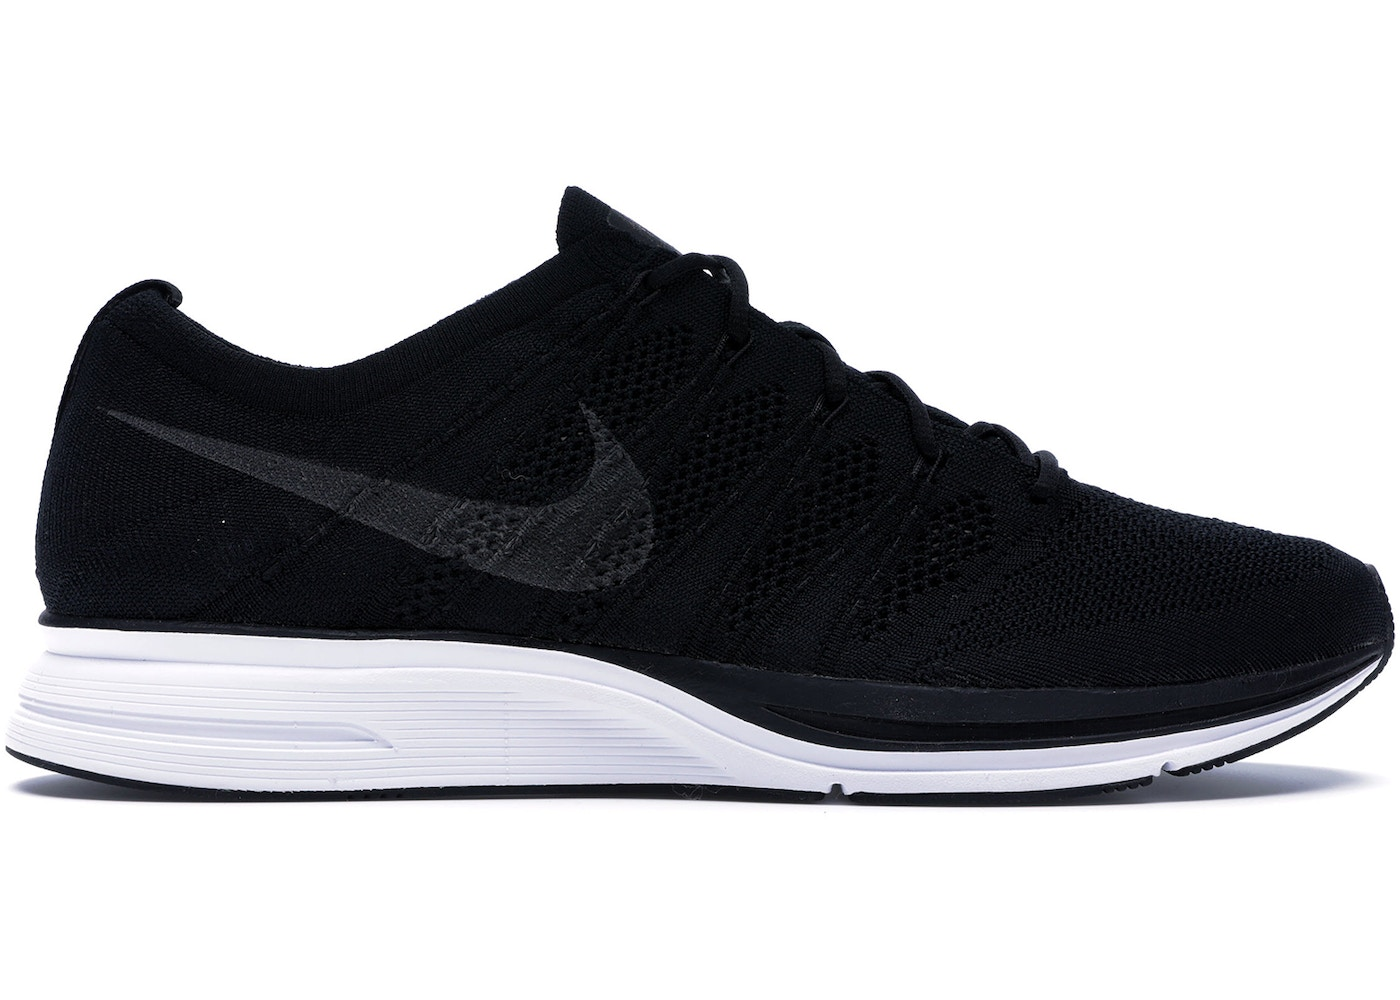 7223a586700a7 Nike Flyknit Trainer Black White (2018) - AH8396-007